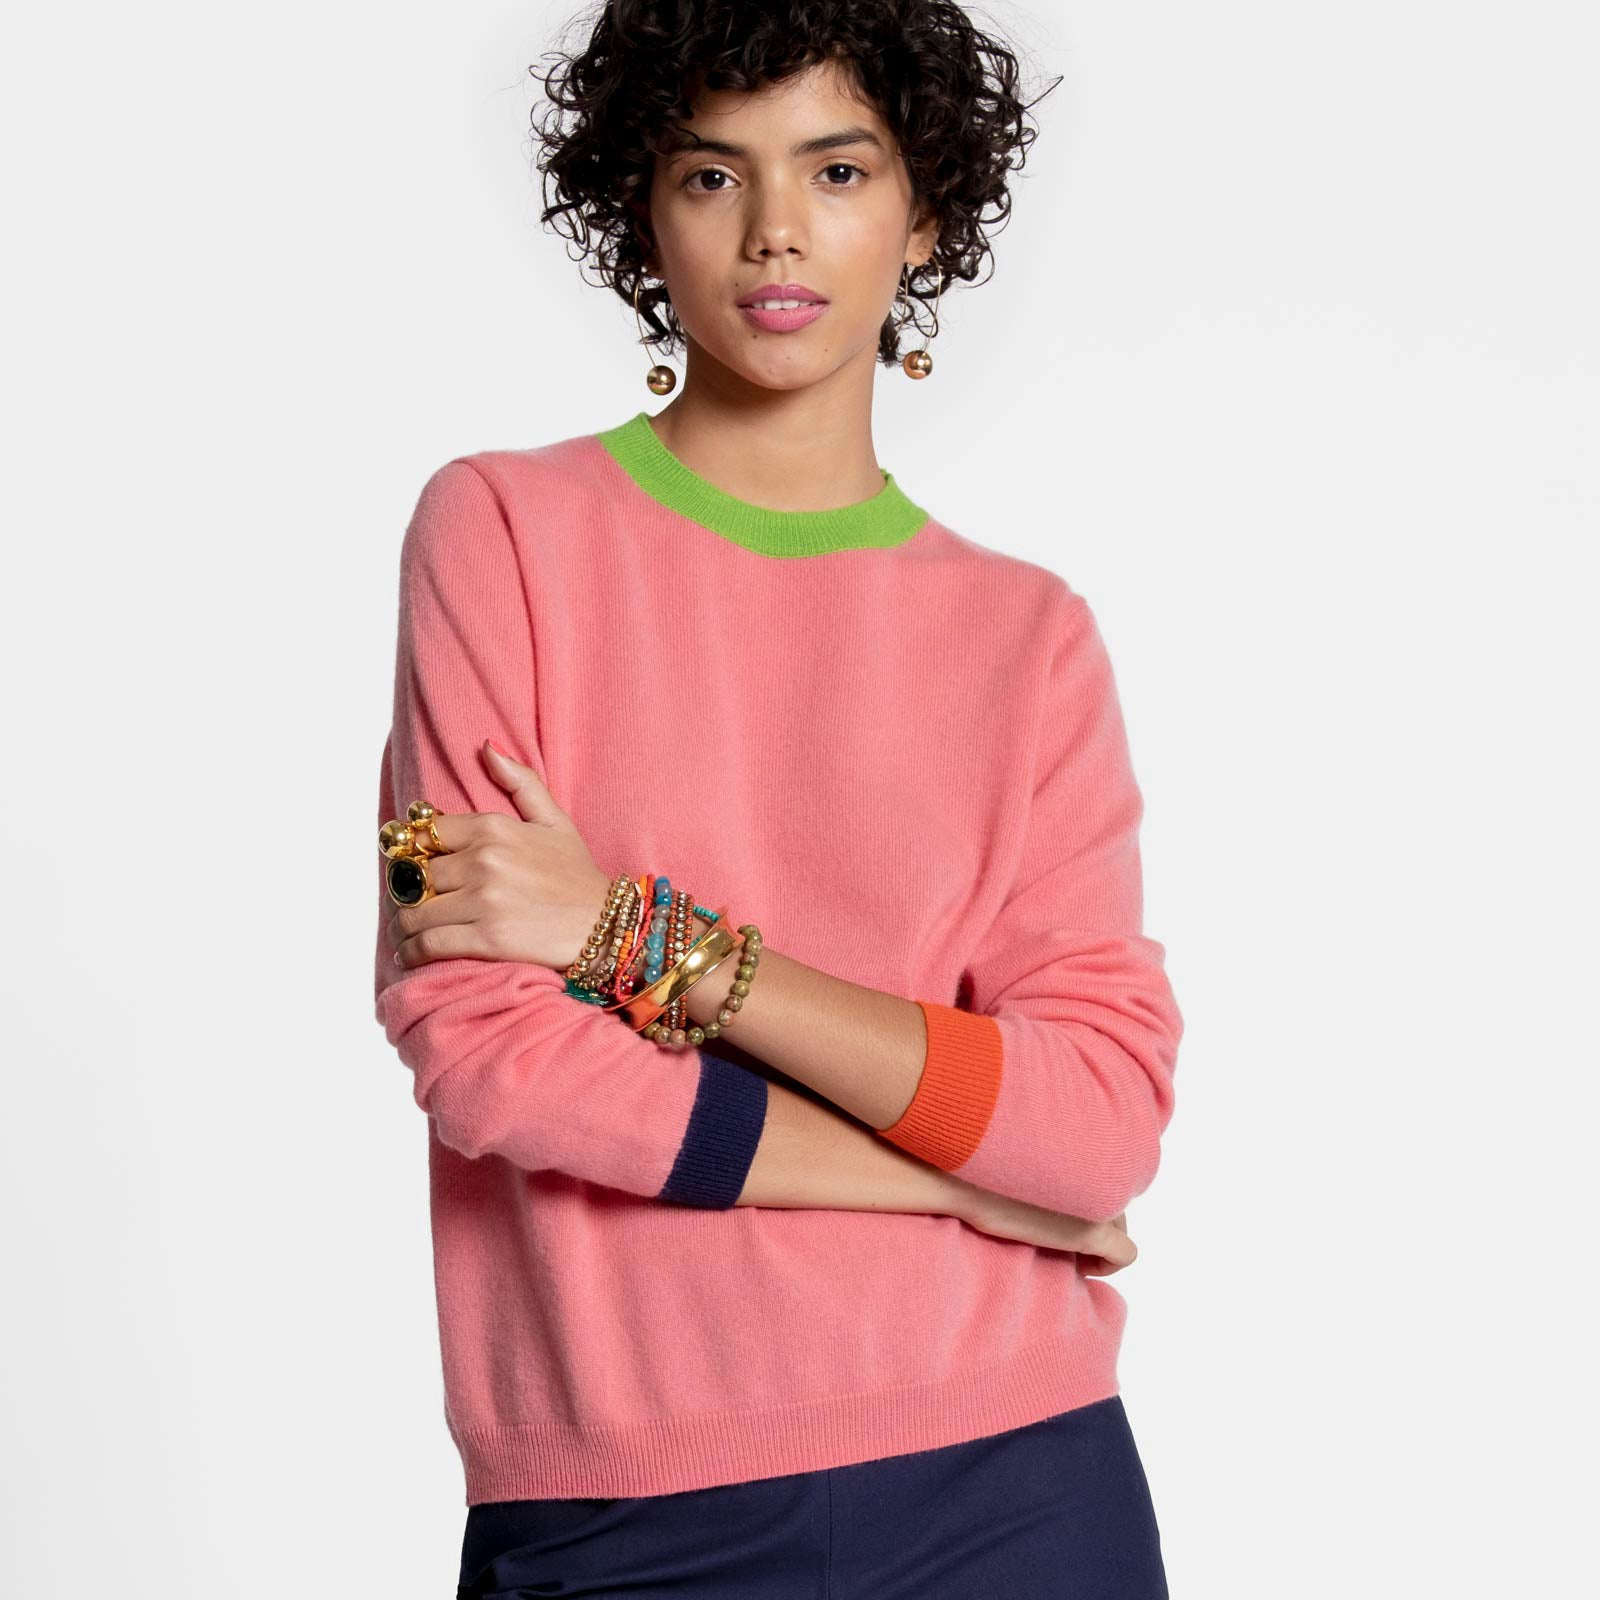 Betts Cashmere Sweater Pink - Frances Valentine